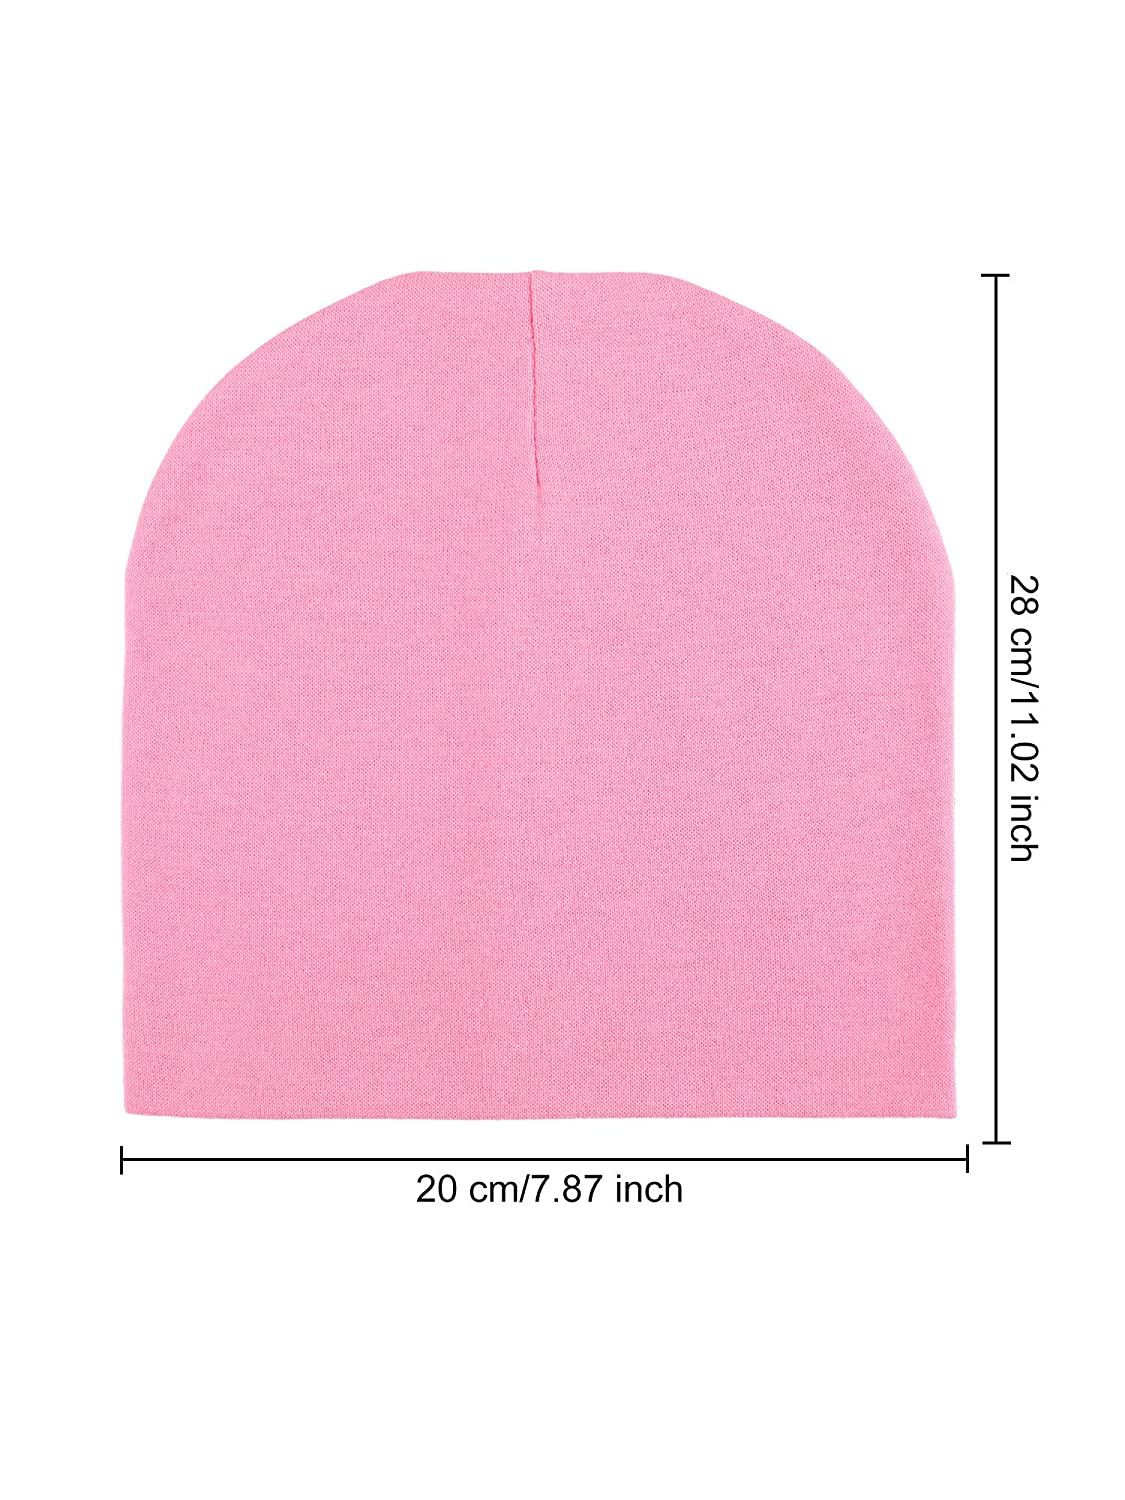 Color 1 12 Pieces Baby Knit Hat Elastic Cotton Beanie Cap for Kid Outdoor Activity